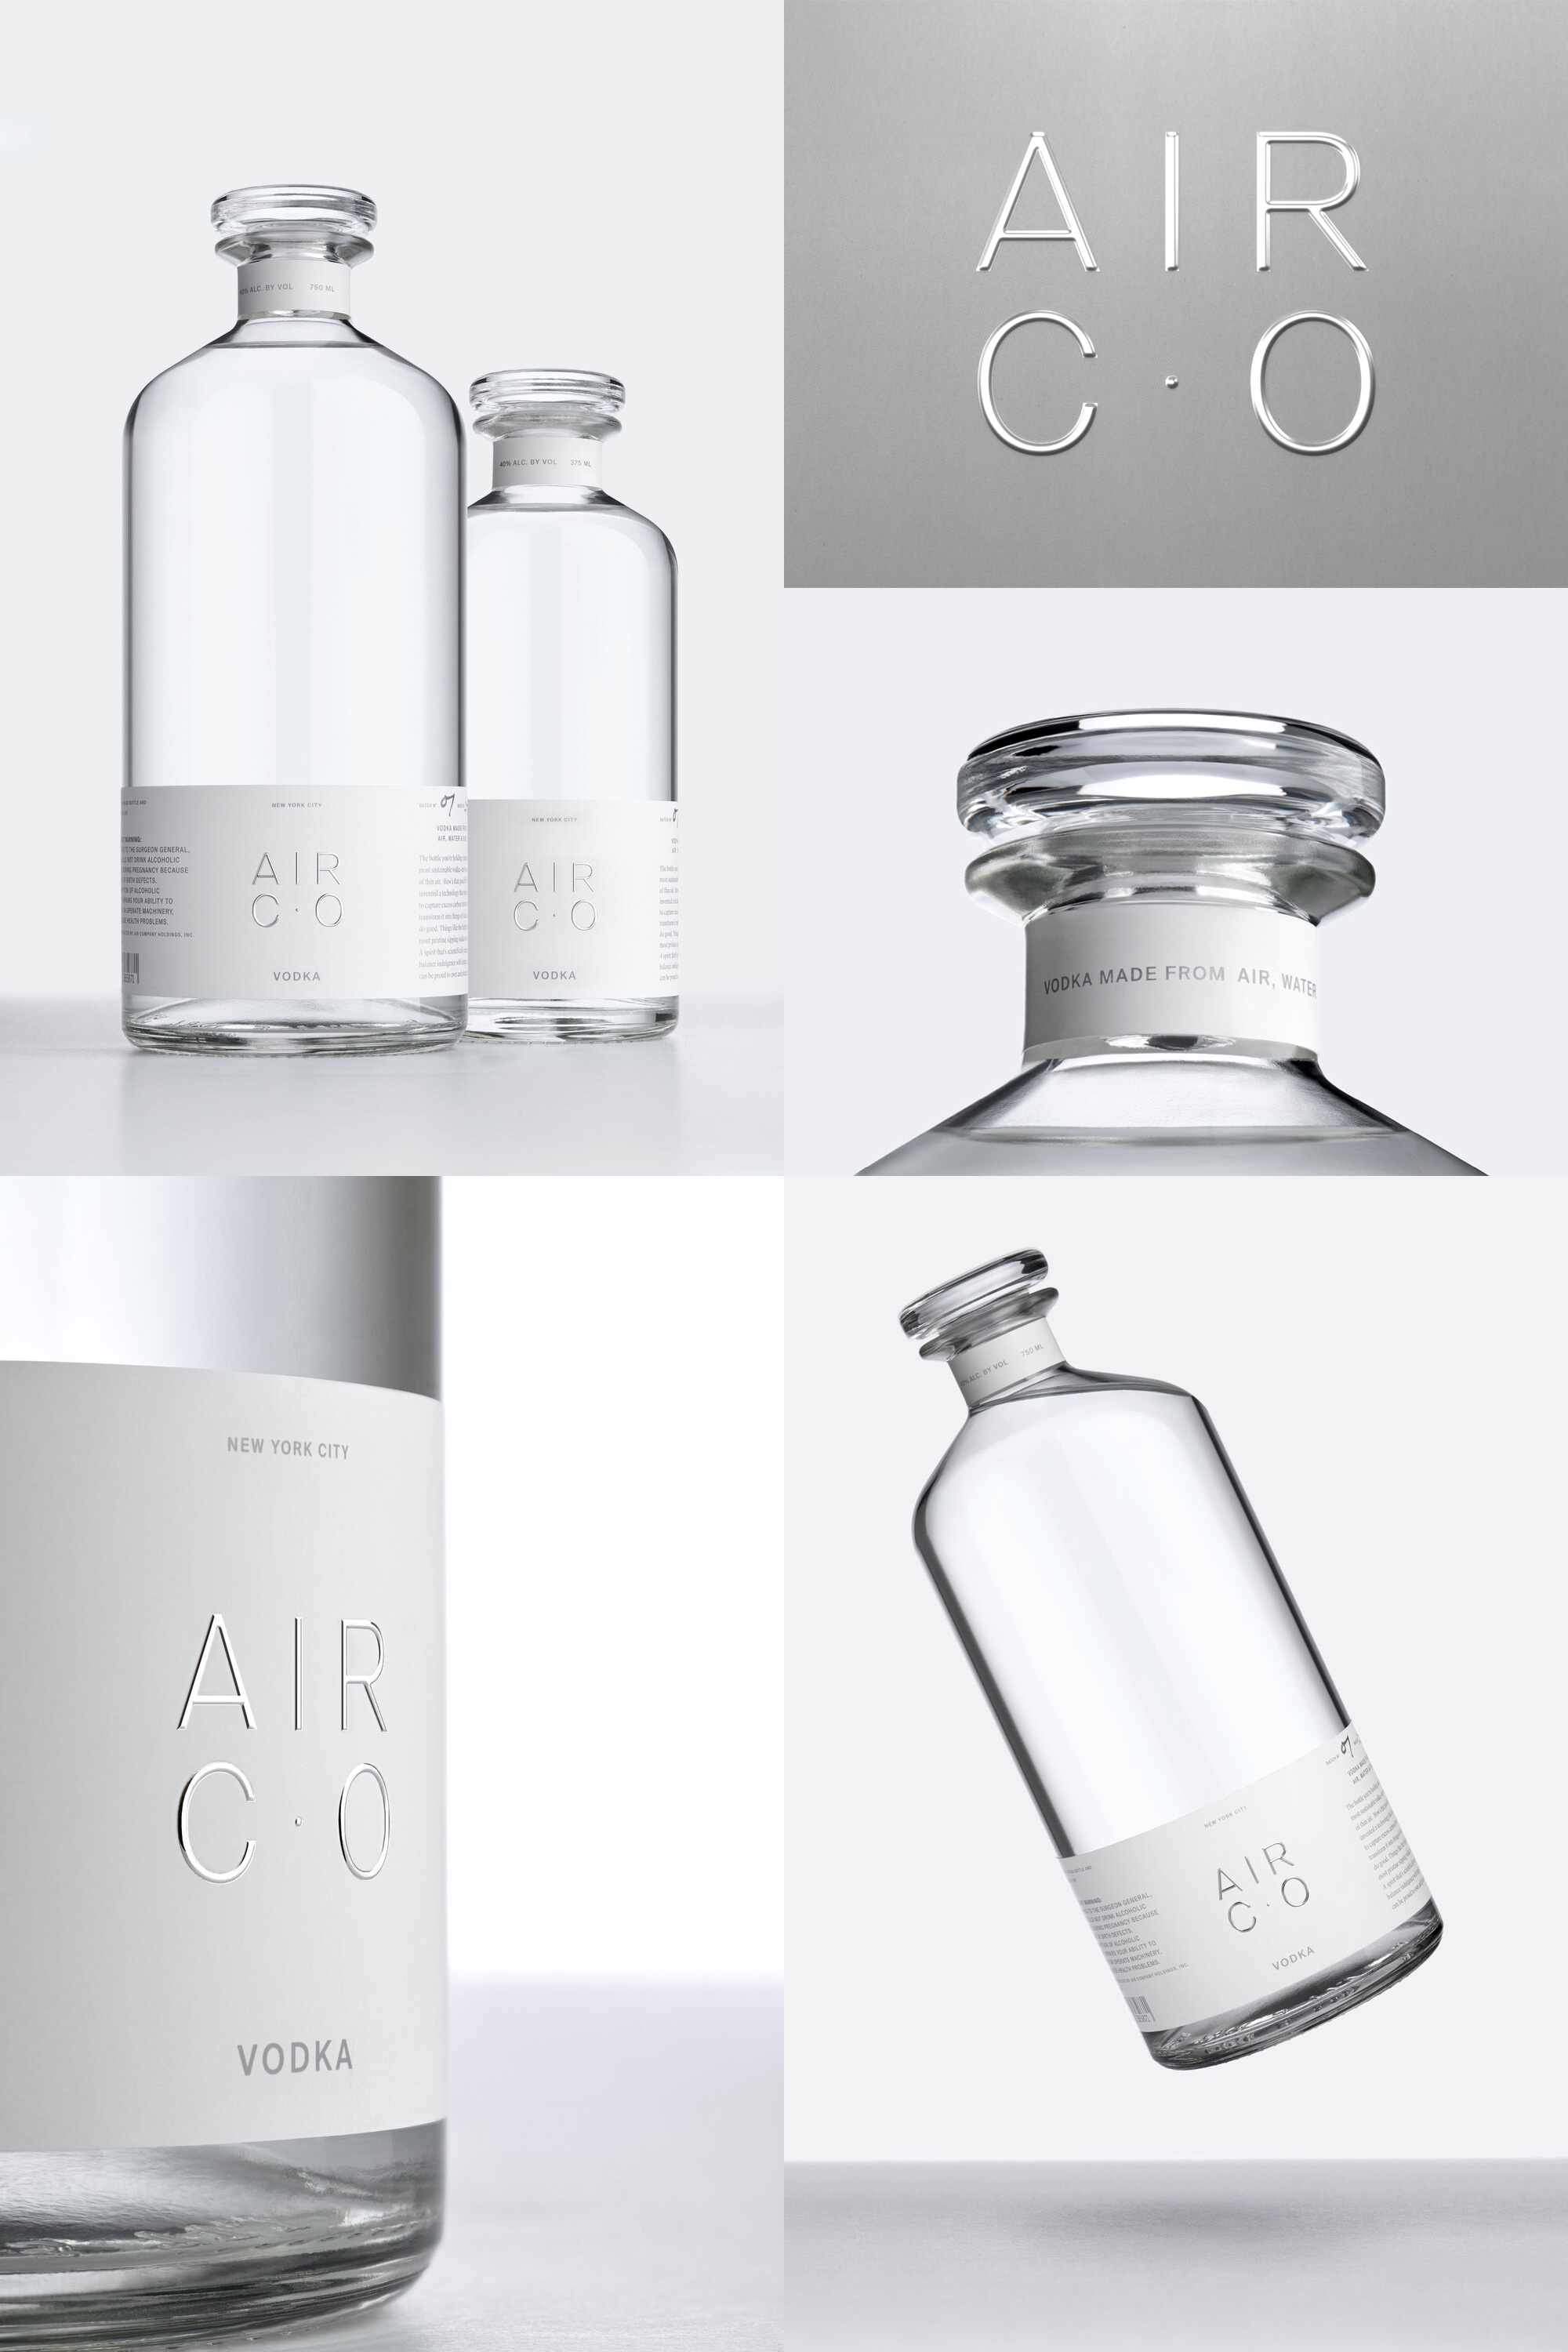 Air Co. by Mythology and Joe Doucet